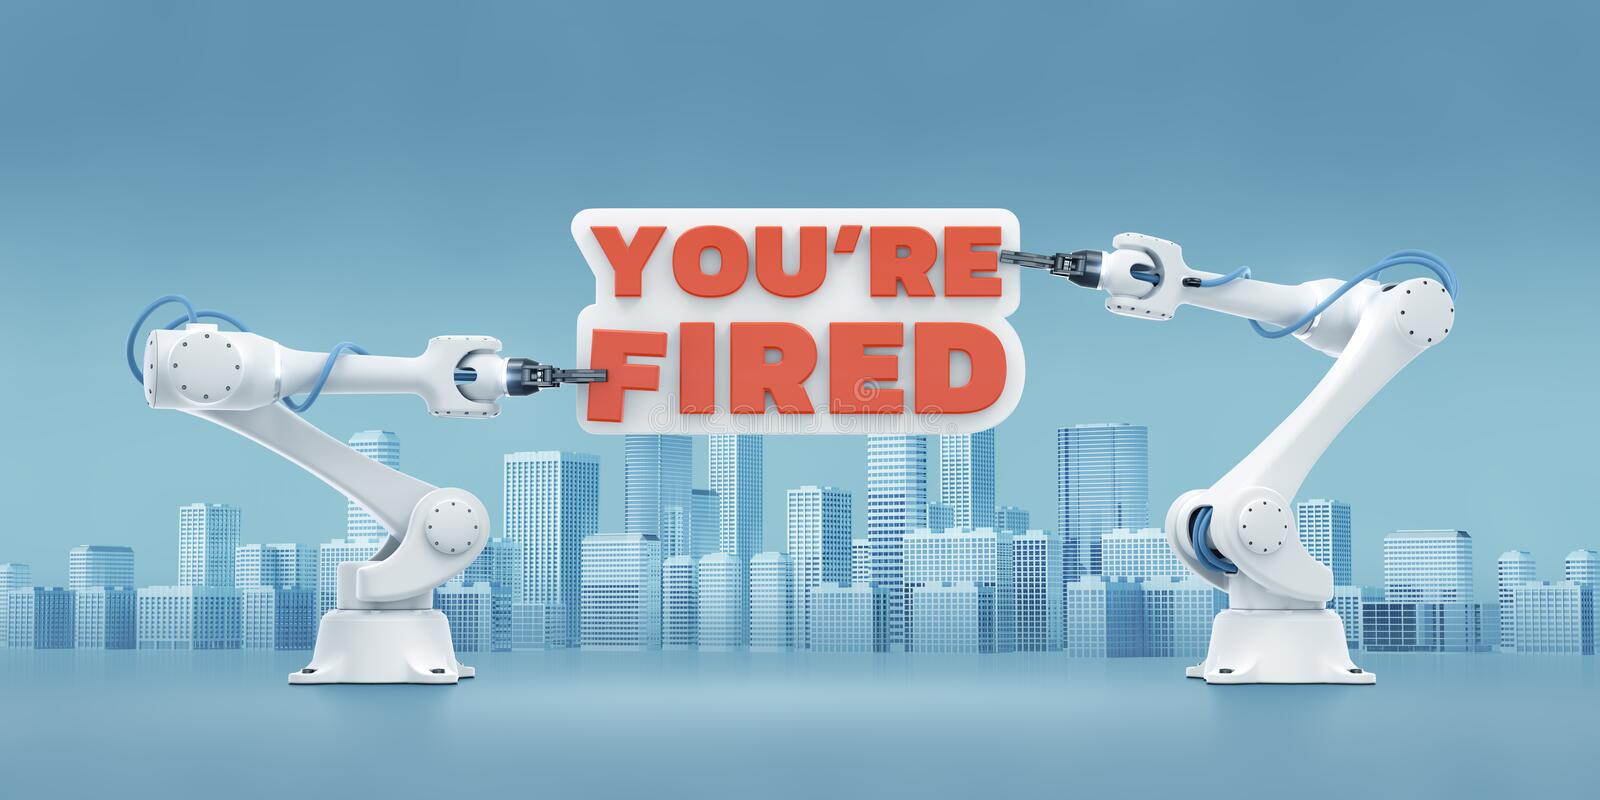 You`re Fired. Industrial robotic manipulators, holding text bunner on cityscape background. 3d rendering graphic composition on the theme of `Technological royalty free illustration